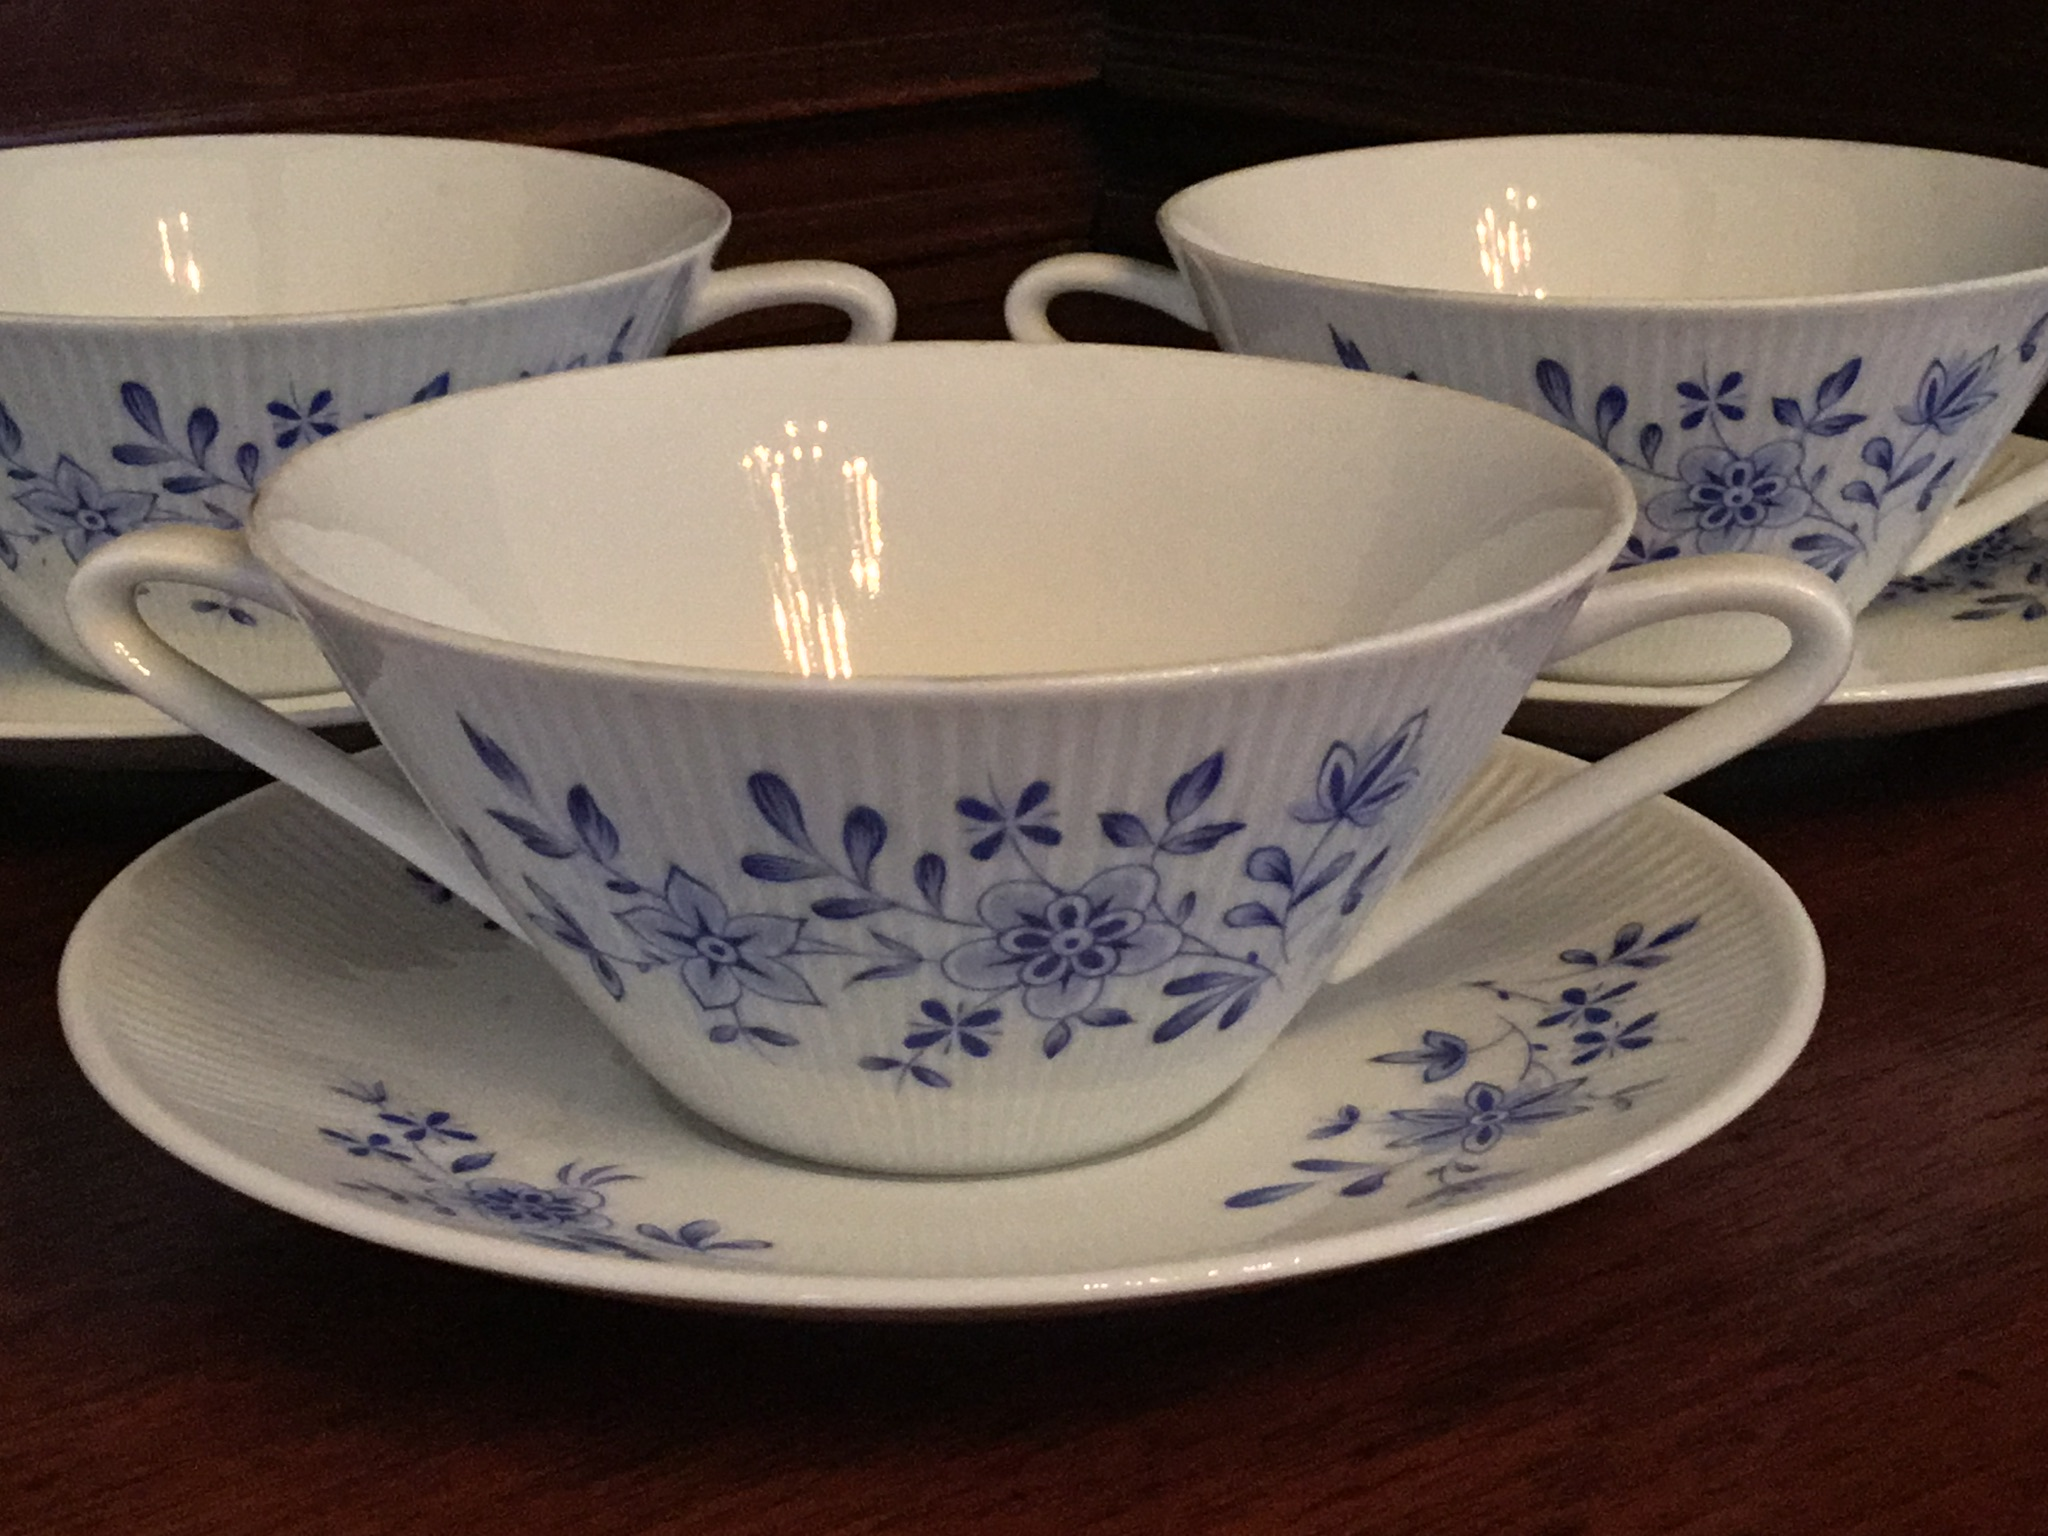 Winterling Double-Handled Soup Bowls with Saucers, Set of 3